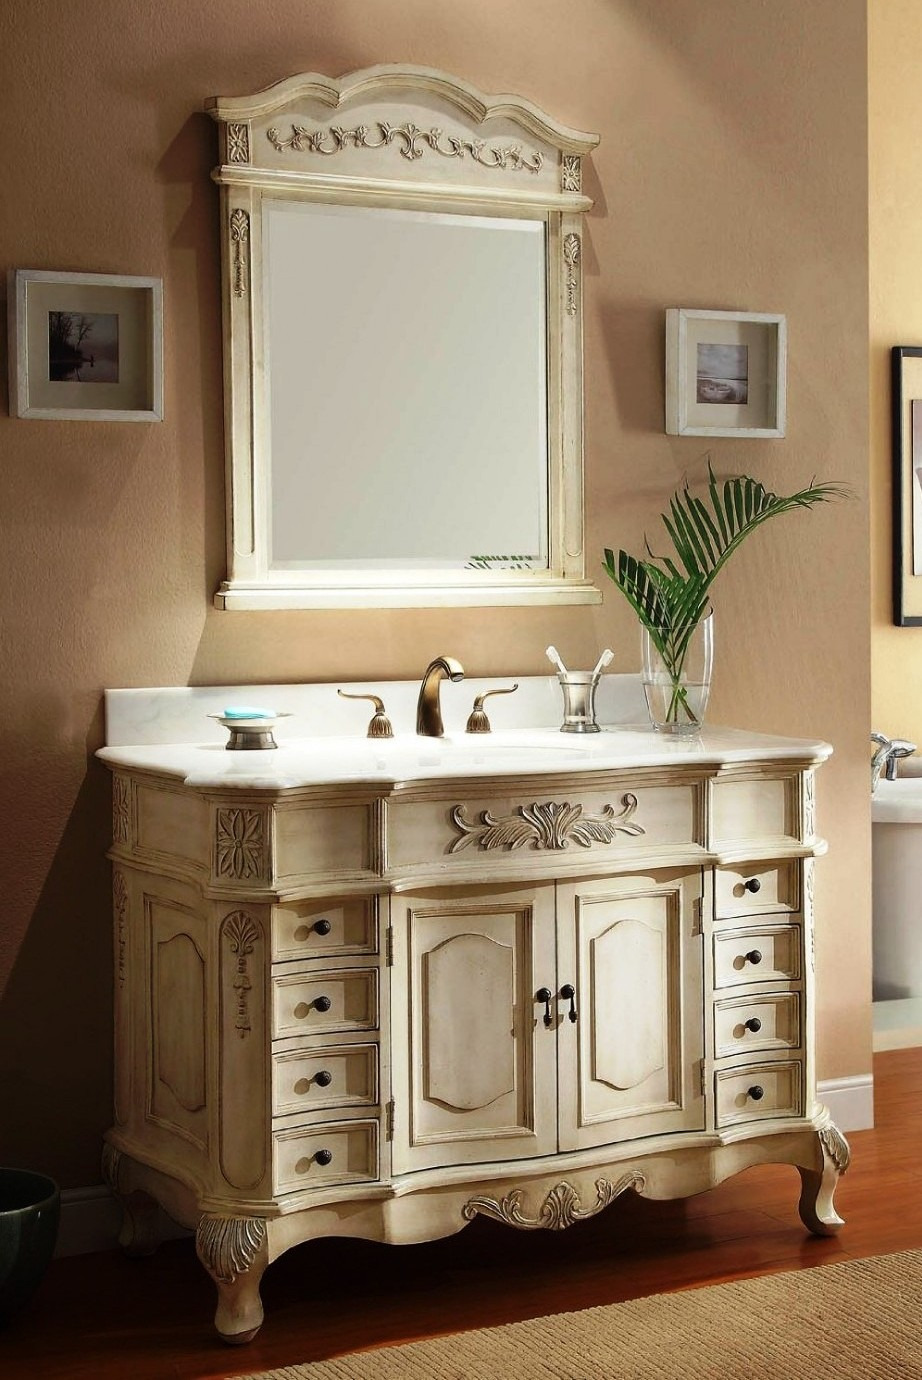 antique looking furniture with mirror 1